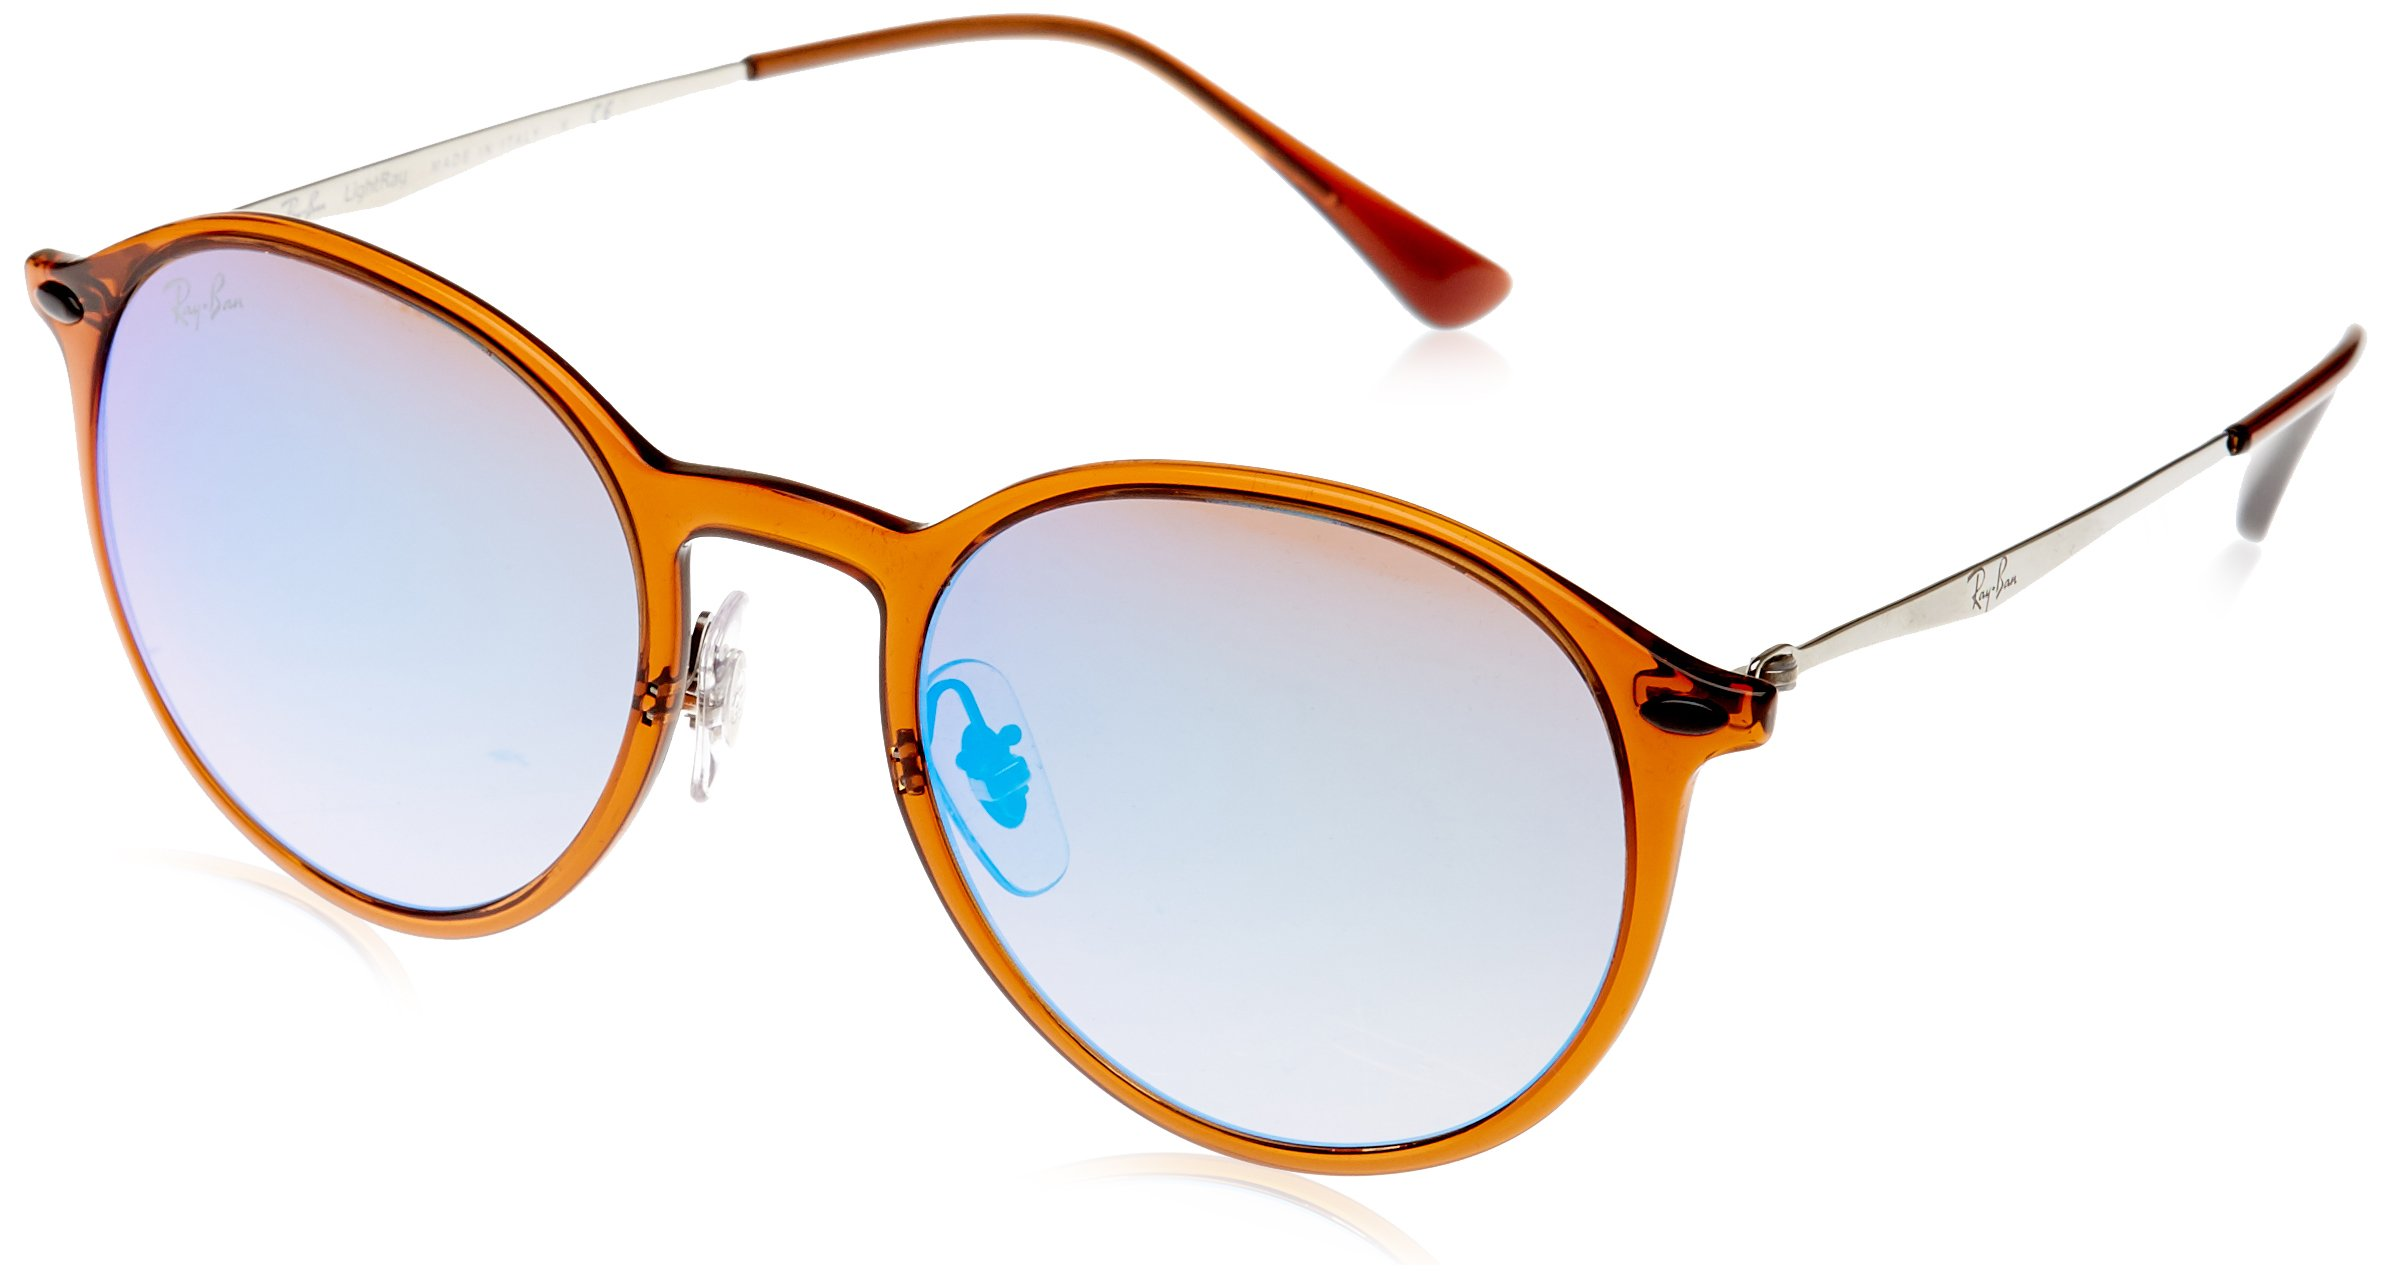 Ray-Ban RB4224 Sunglasses Brown / Gradient Brown Mirror Blue 49mm by Ray-Ban